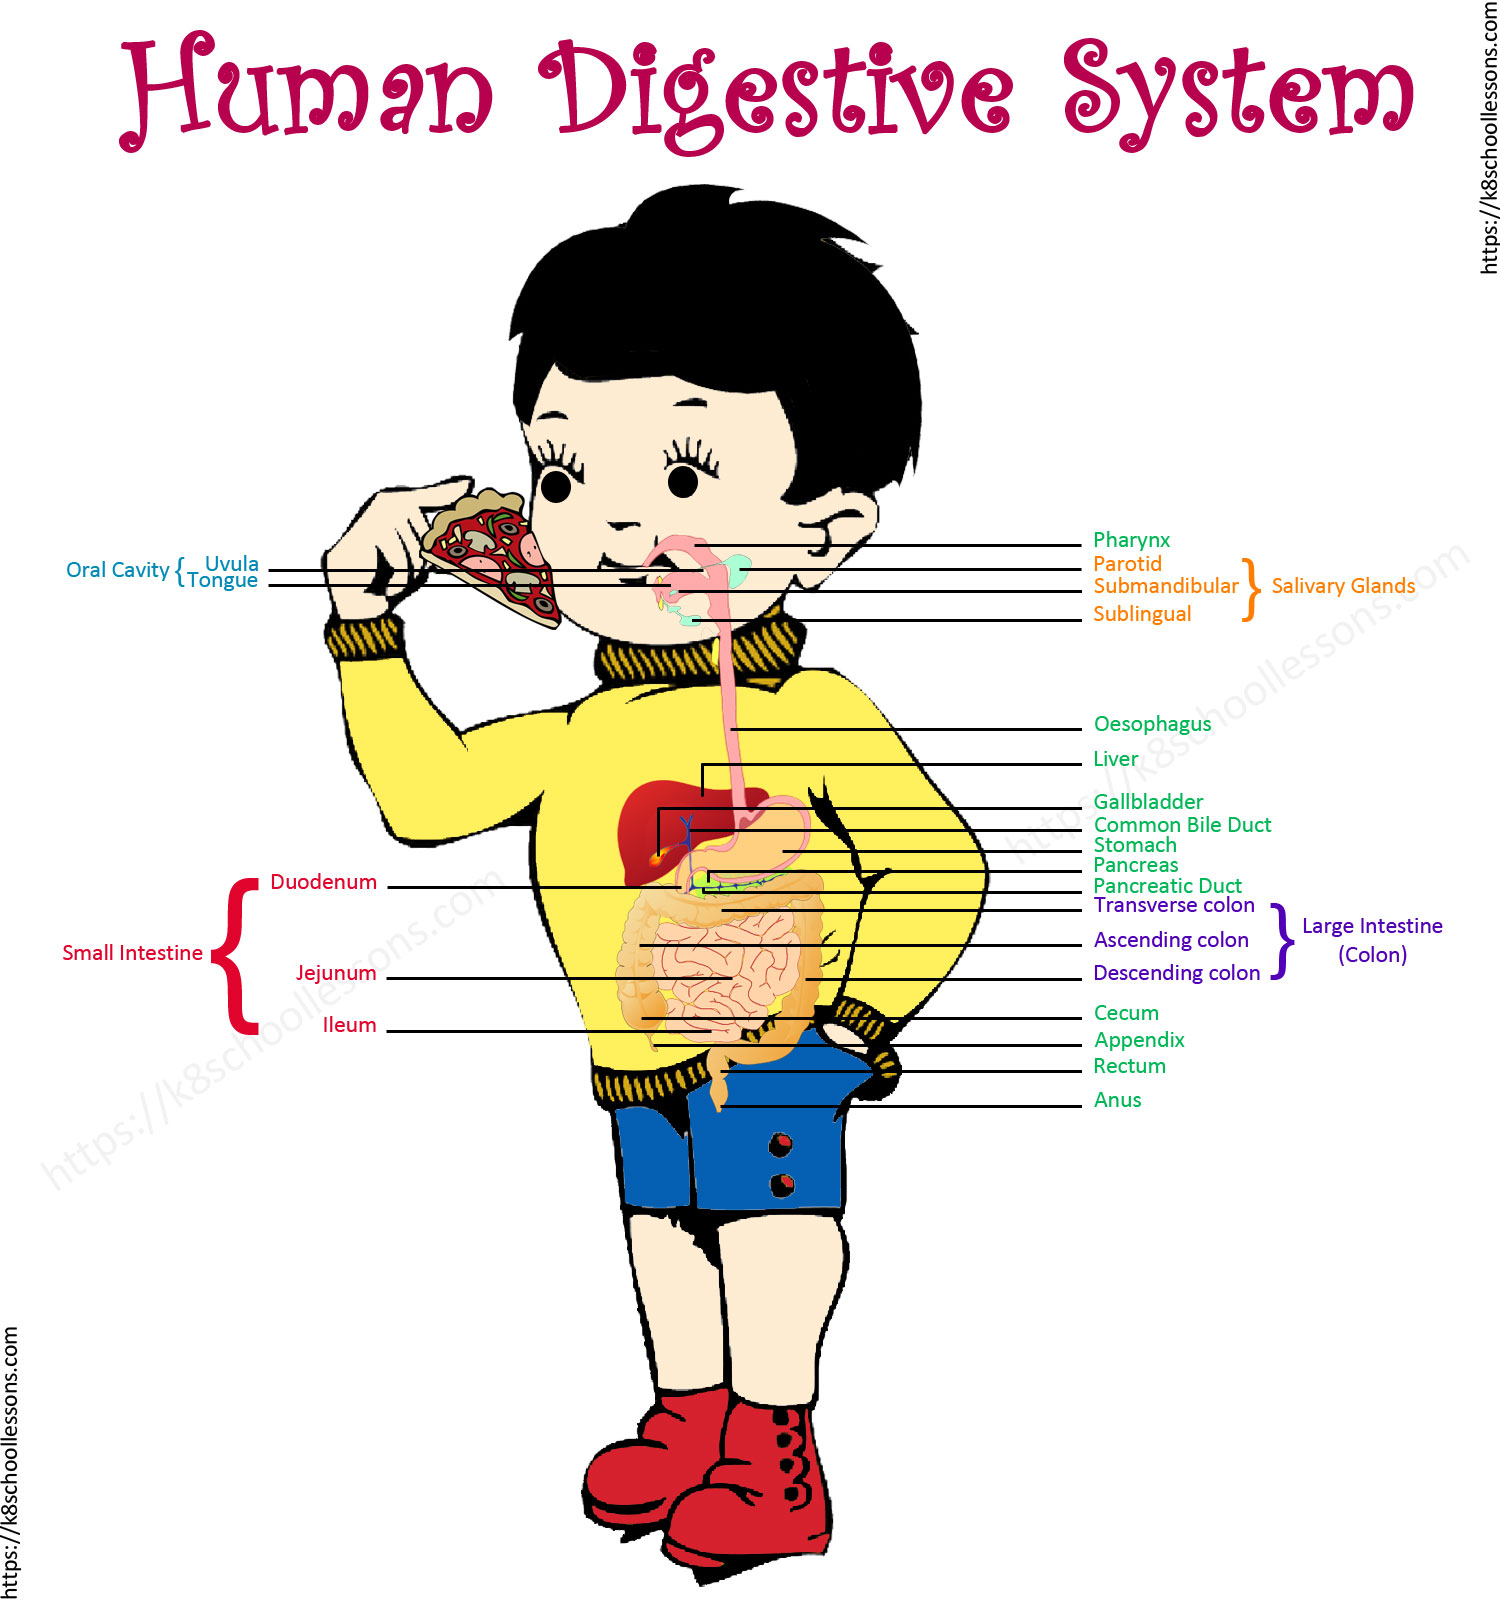 Digestive System Diagram Digestive System For Kids Human Digestive System Human Body Facts